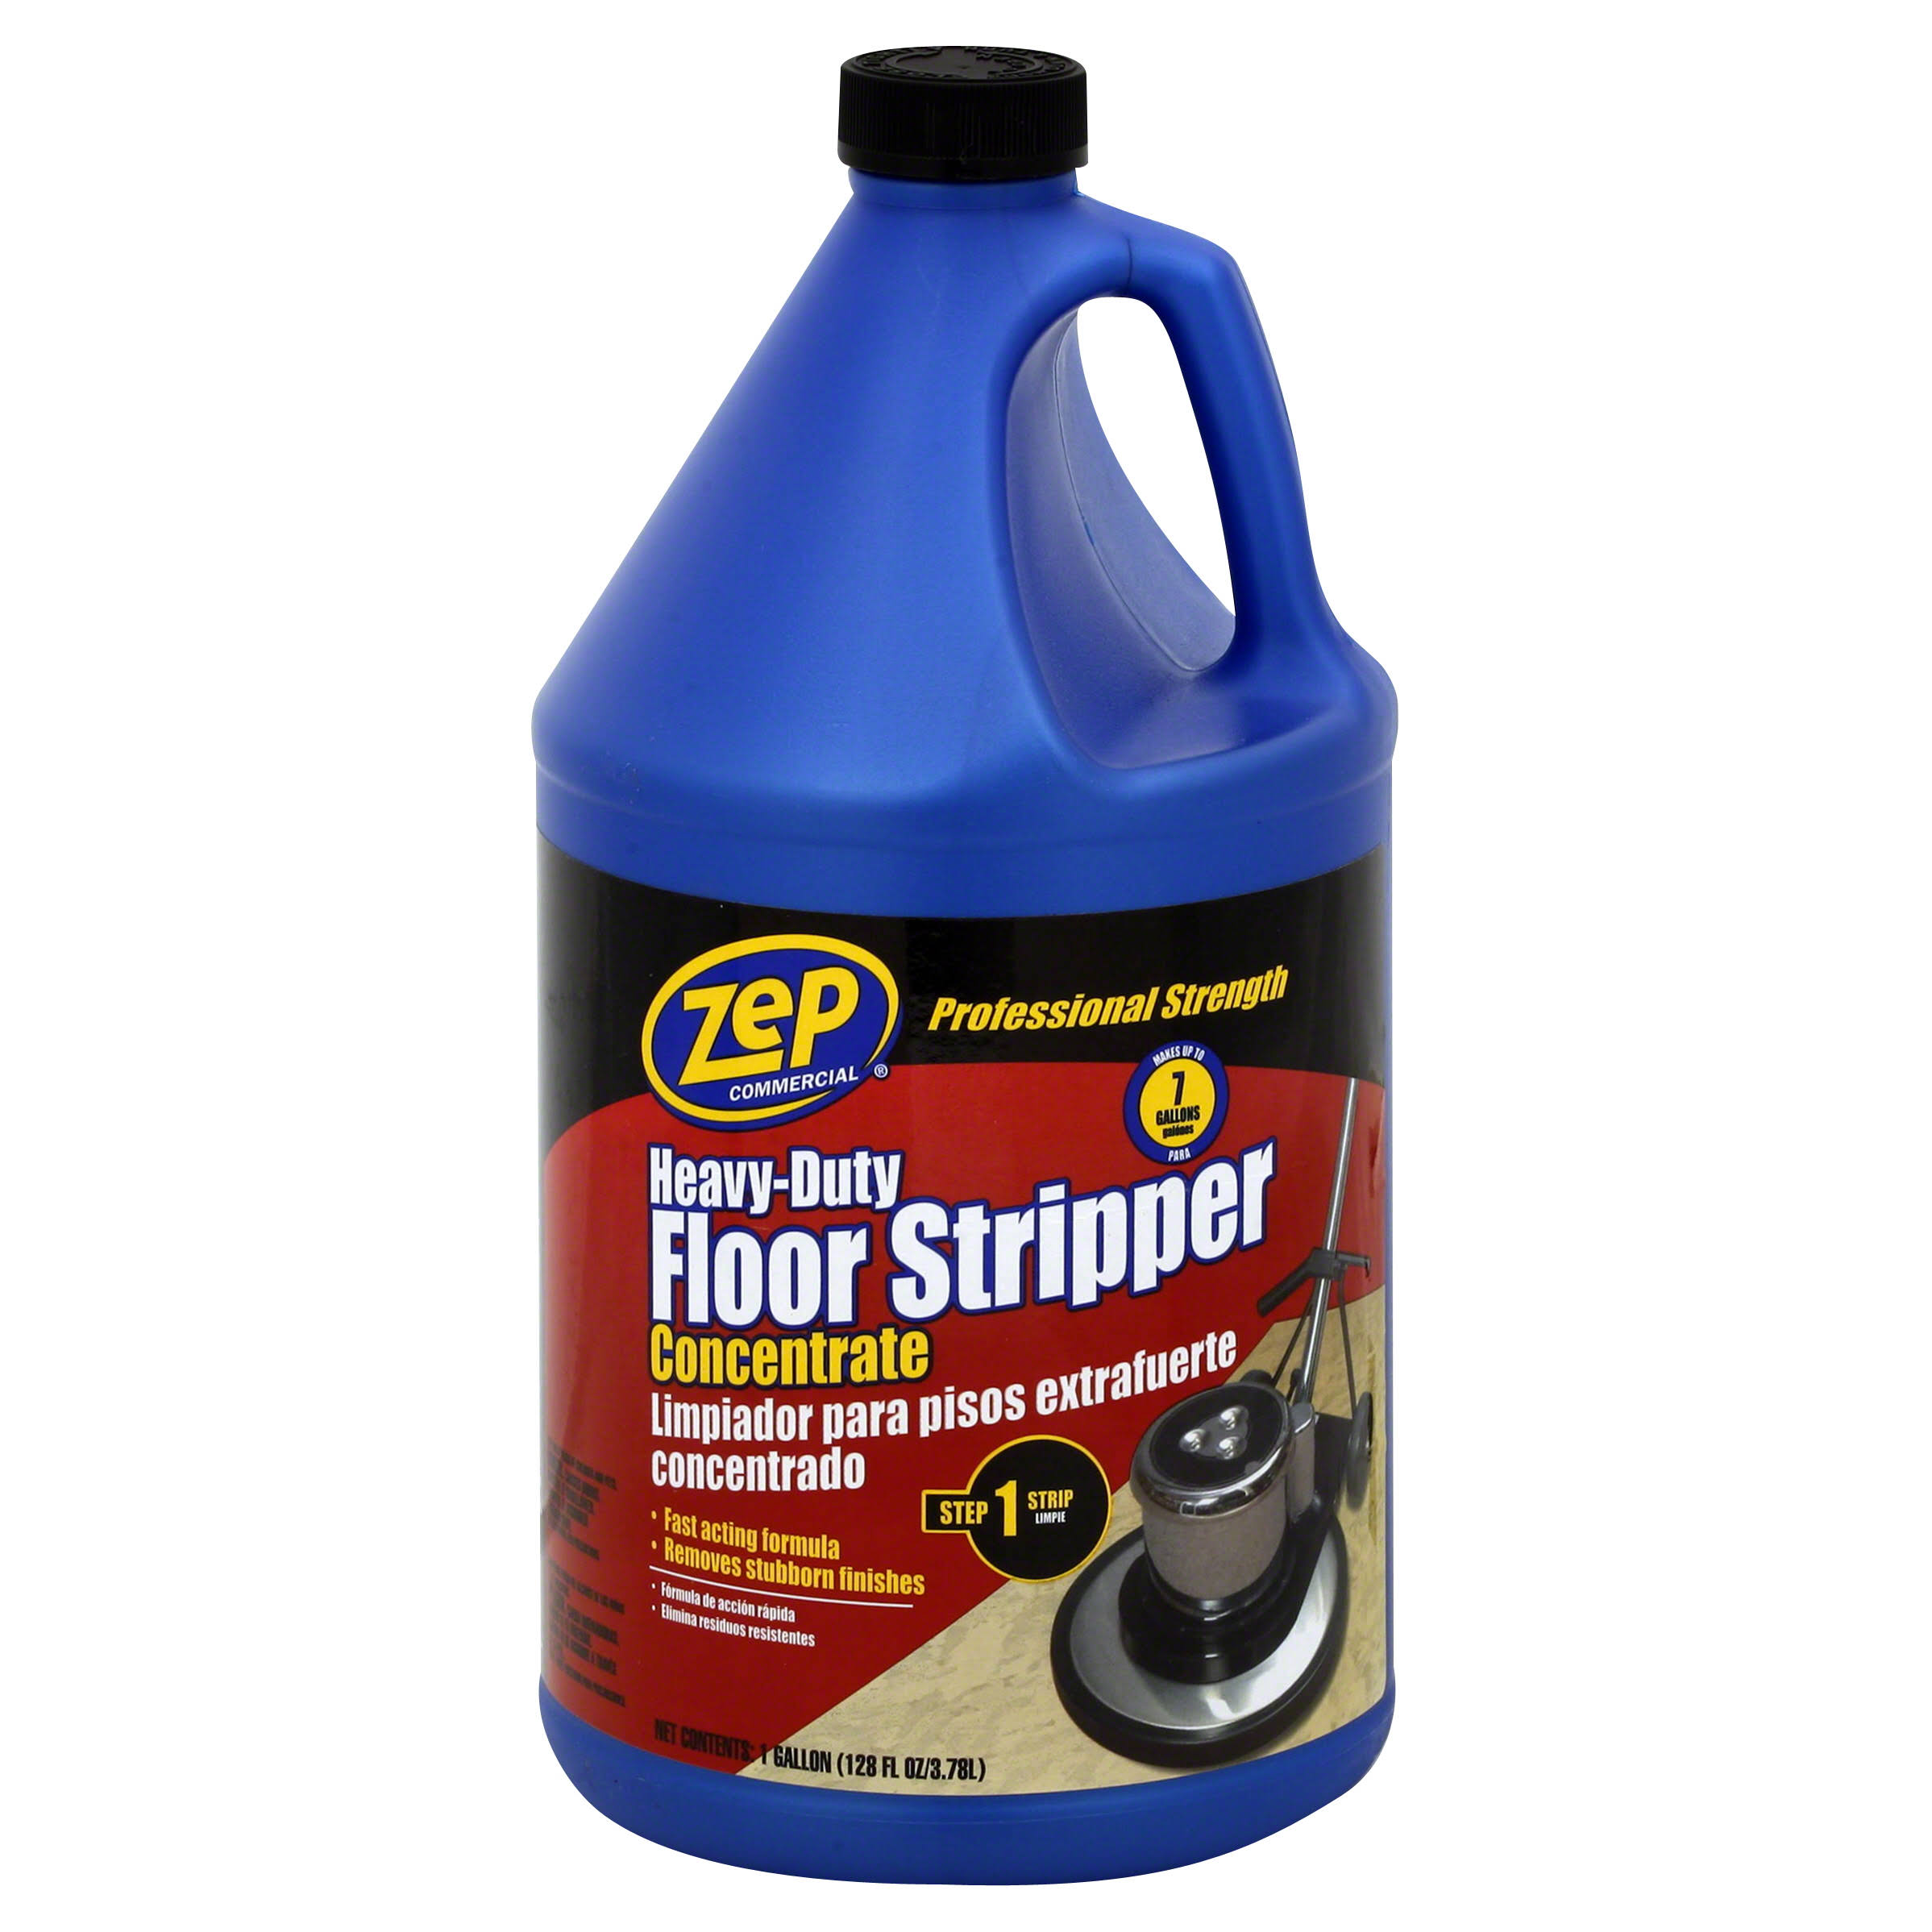 Zep Heavy Duty Floor Stripper Concentrate - 128oz